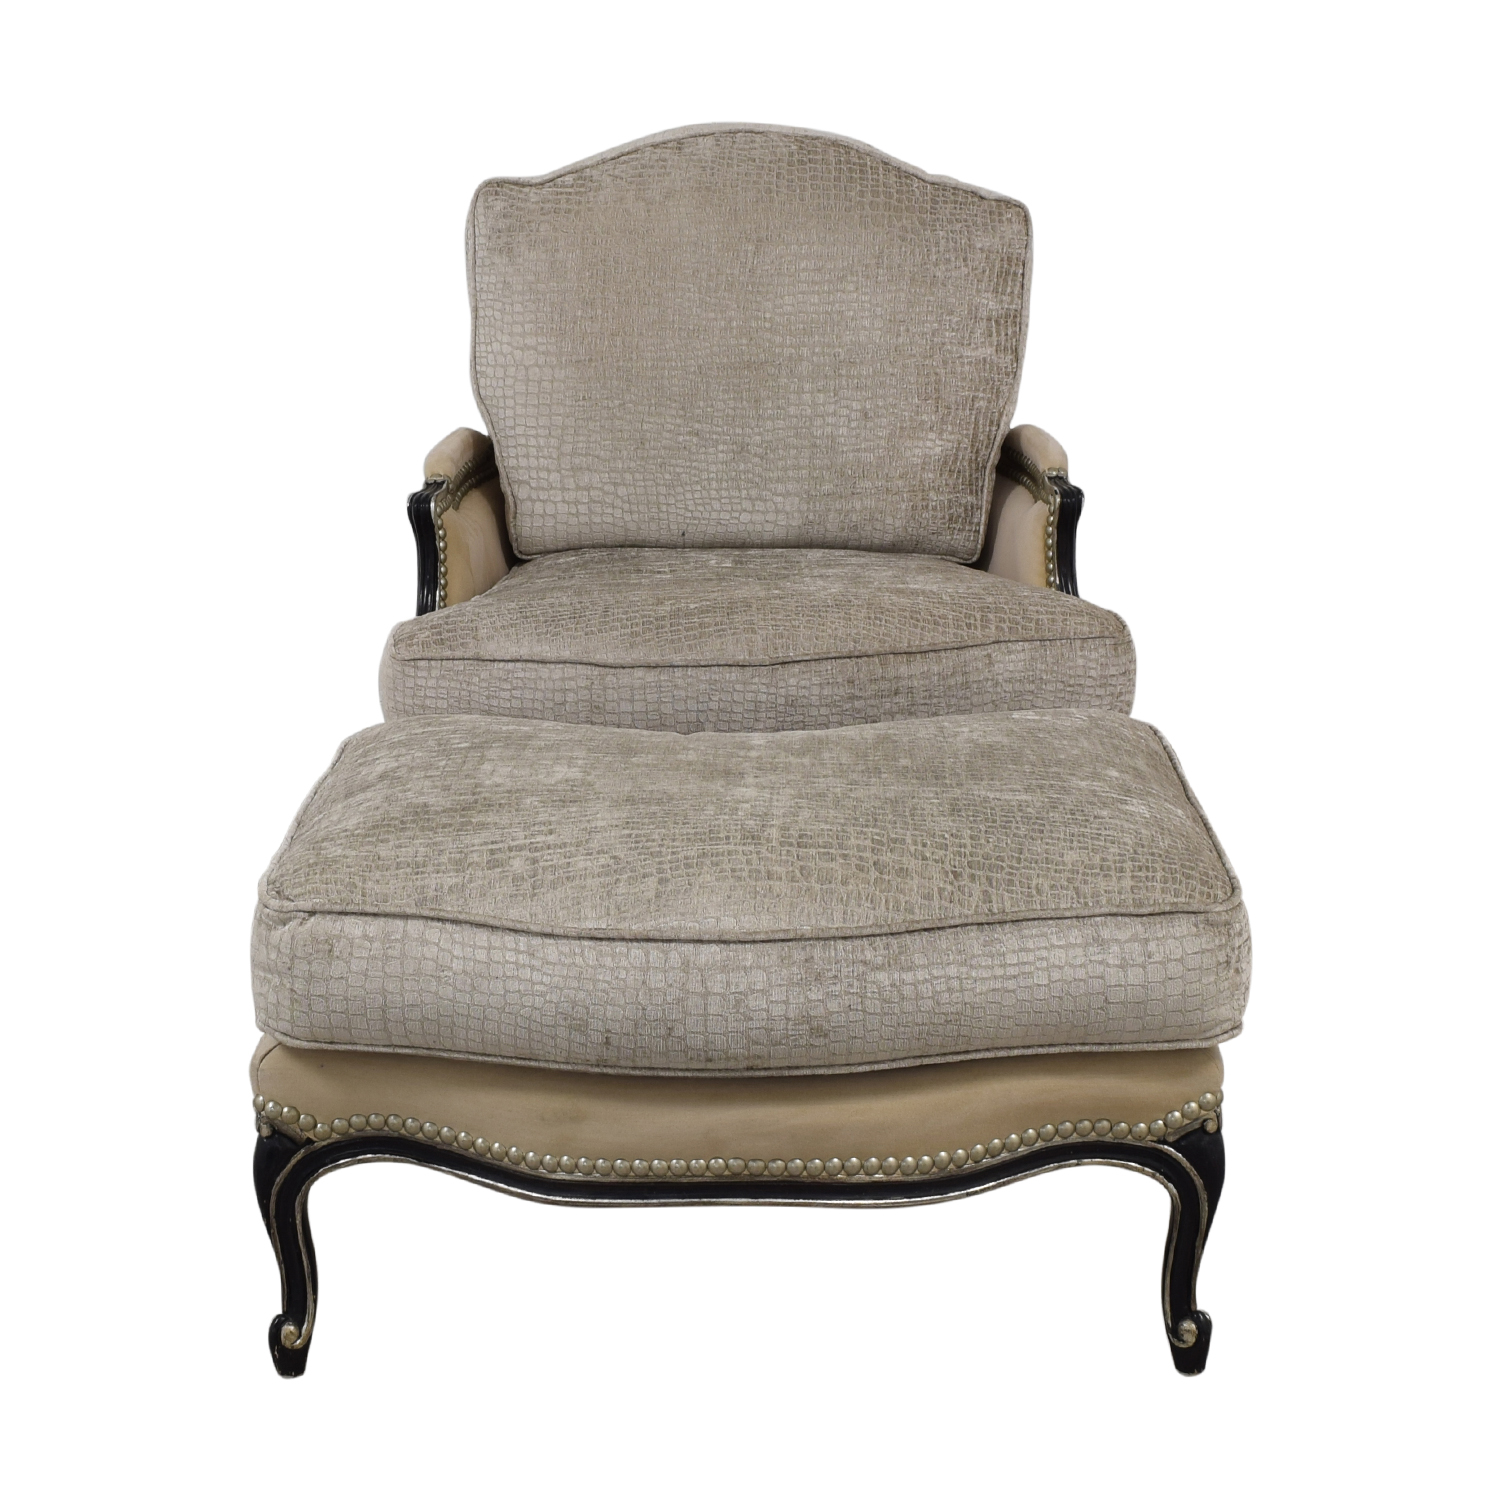 Century Furniture Century Furniture Custom Bergere Chair With Ottoman nyc